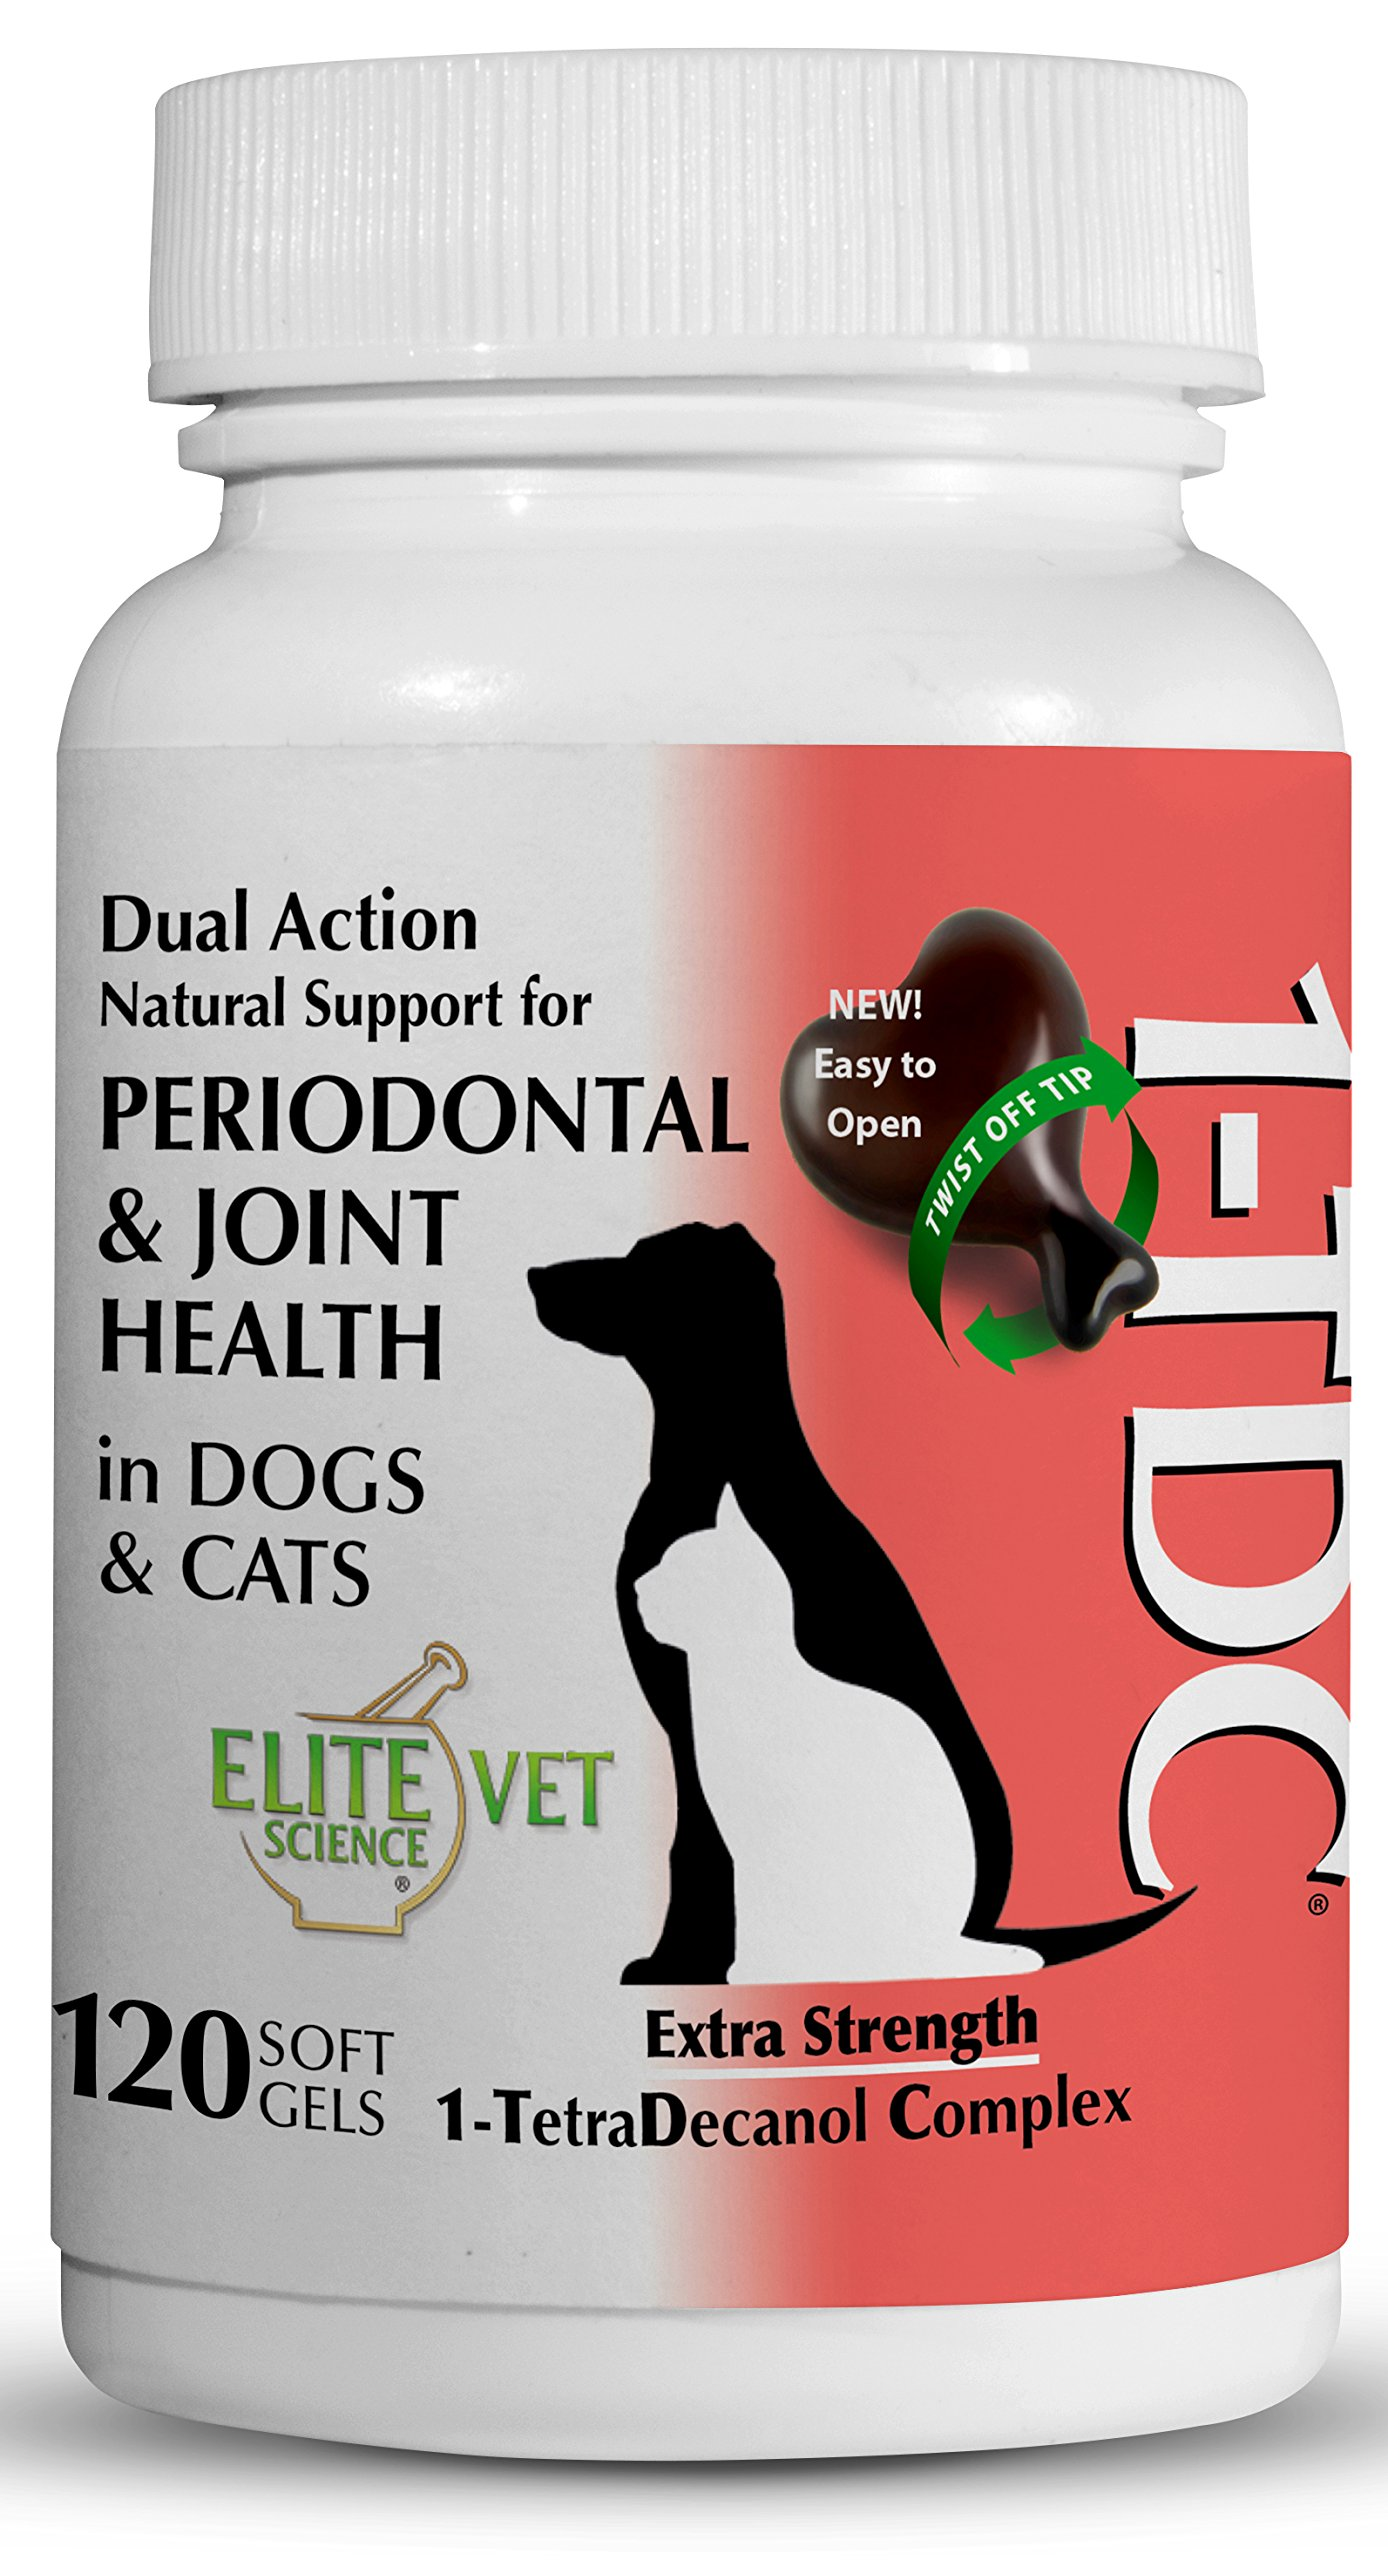 1-TDC Dual Action Natural Support – 120 Twist Off Soft Gels | Delivers 4 Major Health Benefits for Dogs & Cats | Oral Health, Hip & Joint Health, Muscle & Stamina Recovery, Skin & Coat Health